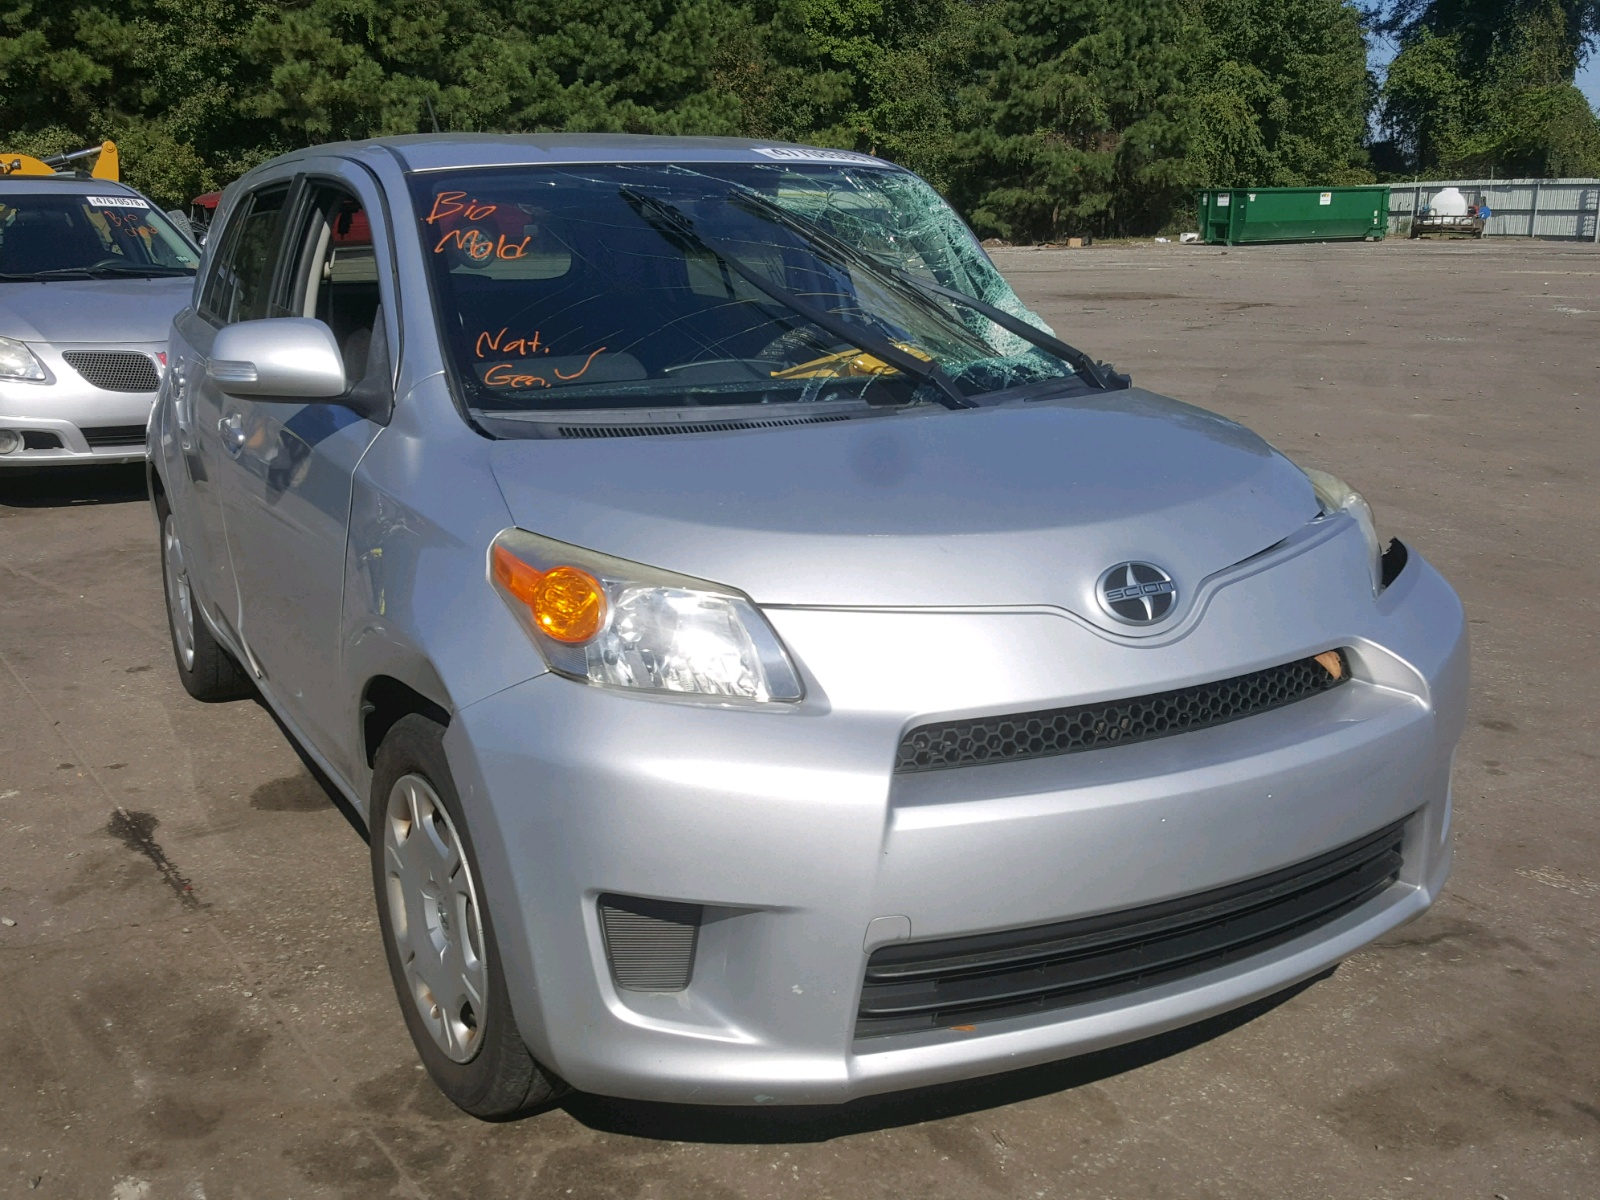 Salvage 2012 Scion XD for sale